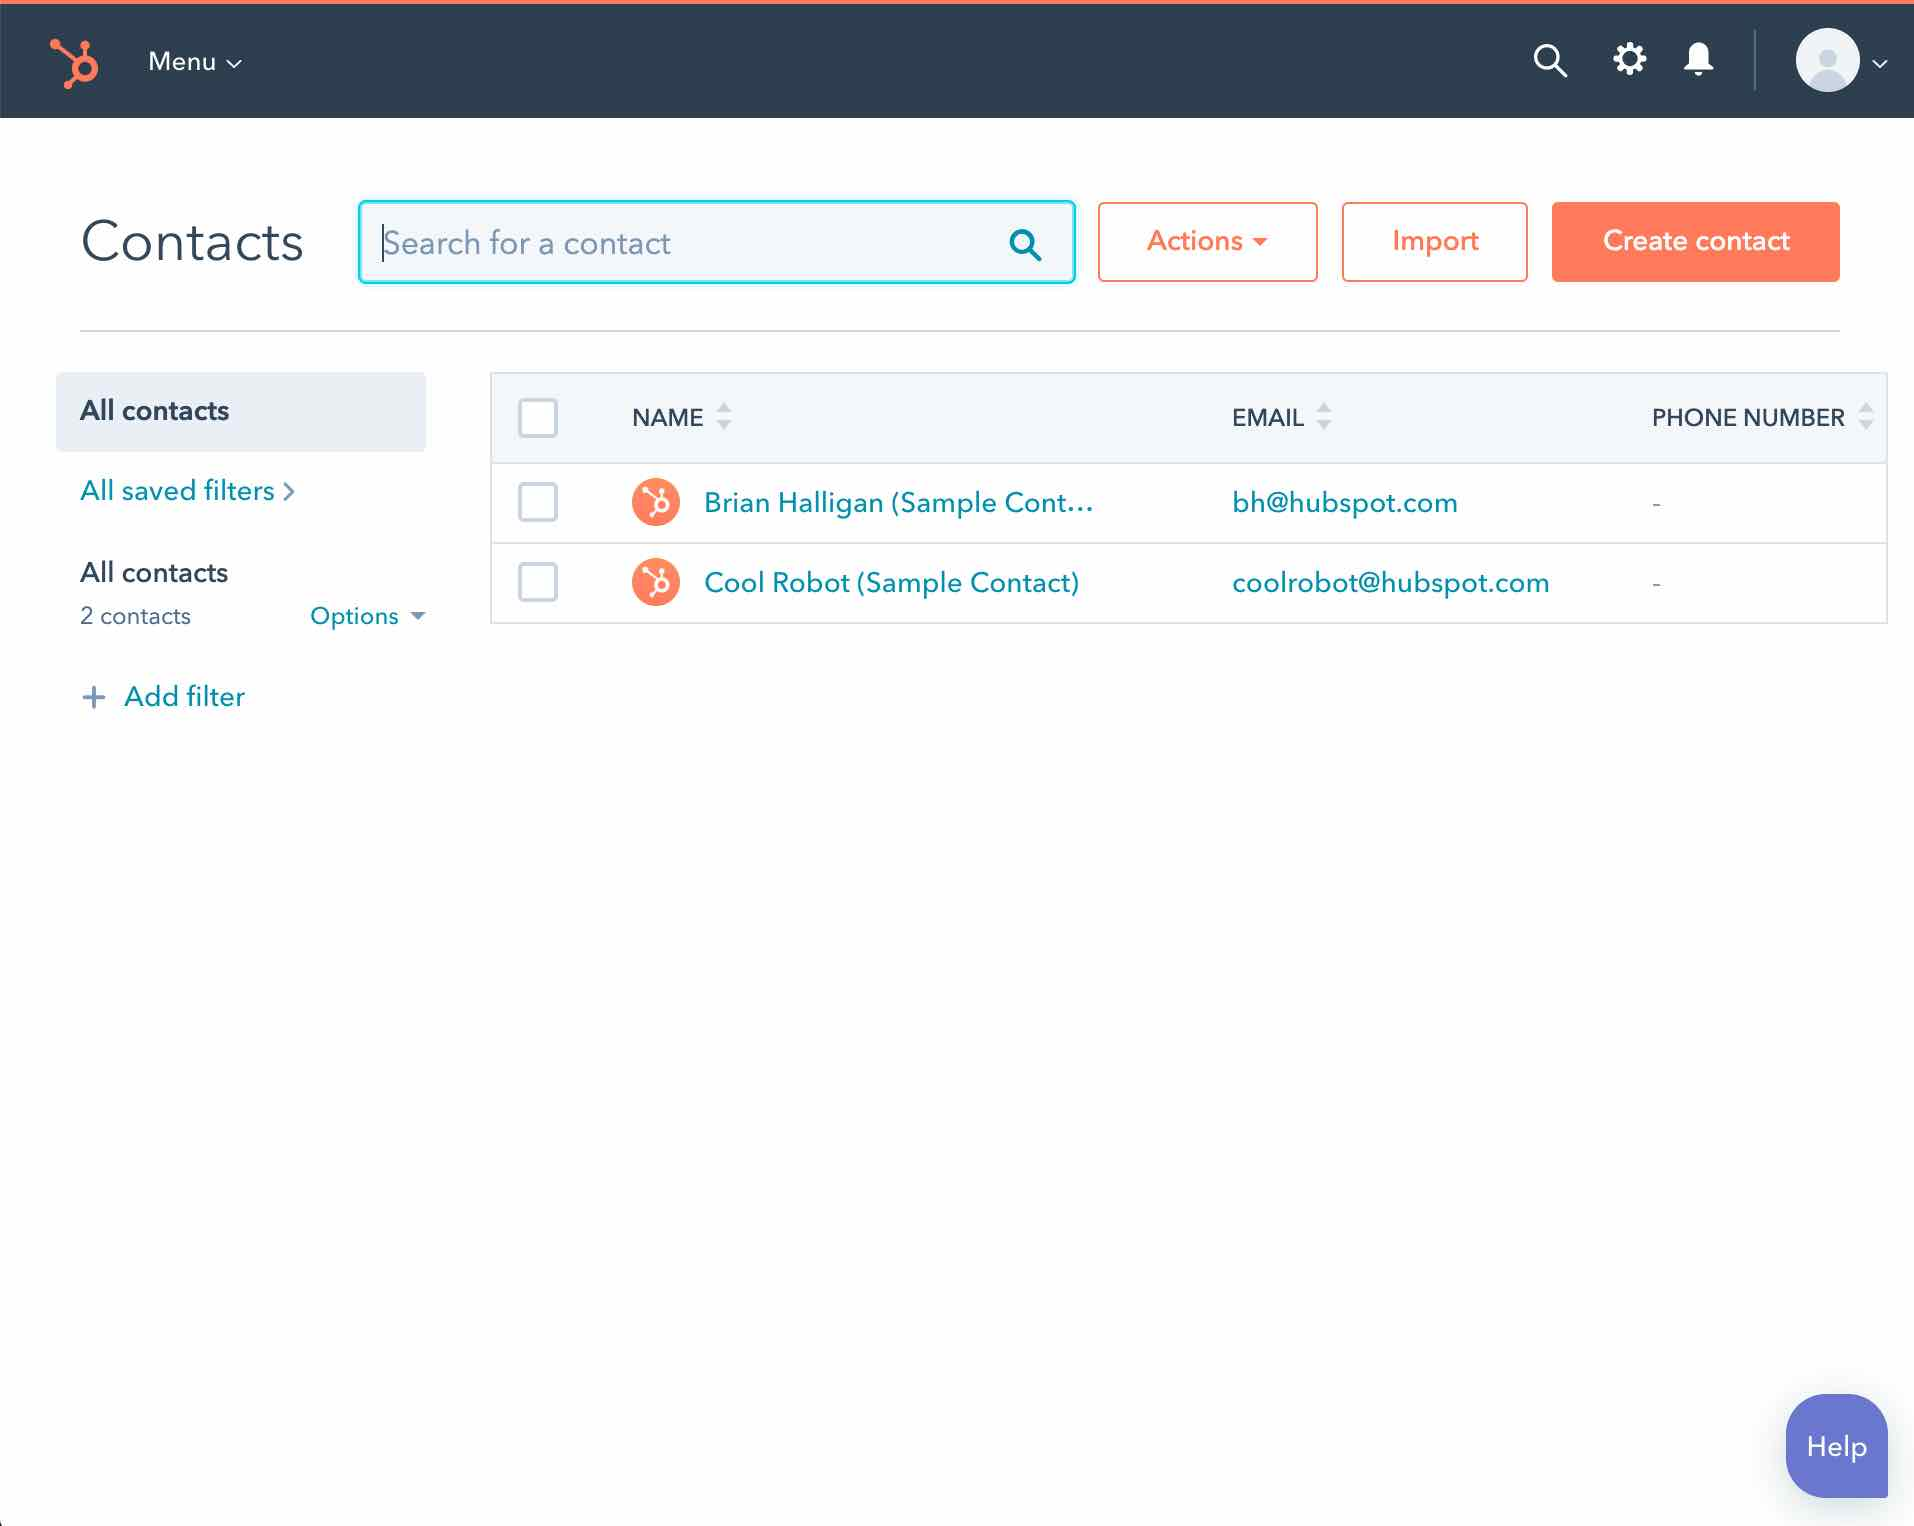 Review our Hubspot contacts